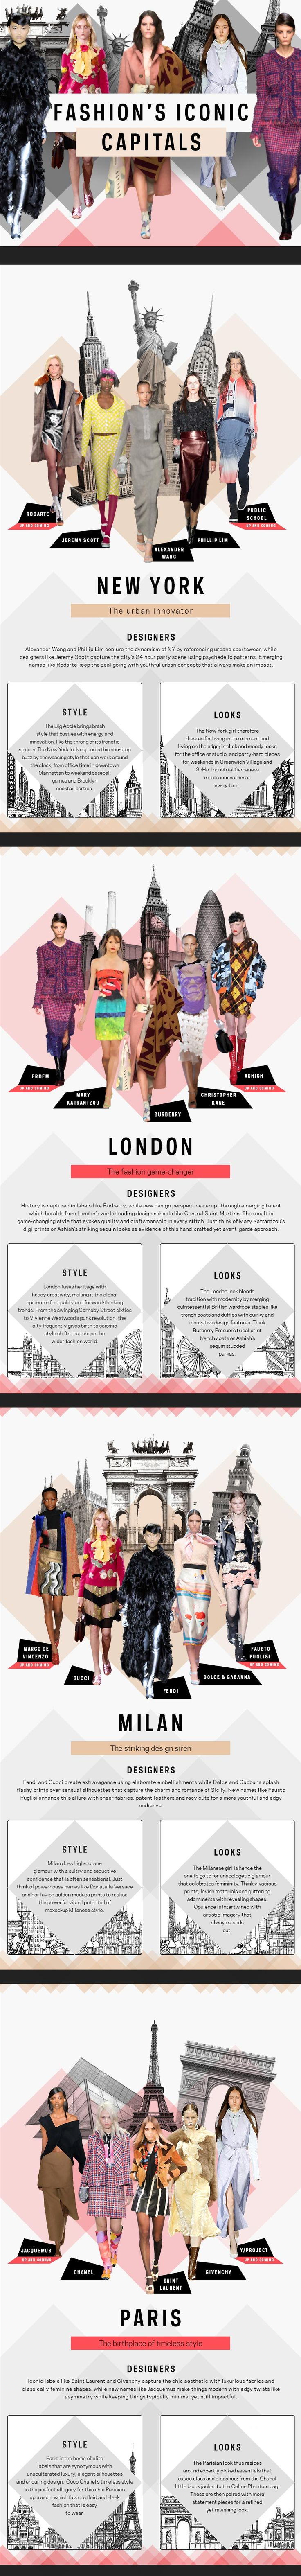 Fashion's Iconic Capitals #infographic #Fashion #Lifestyle